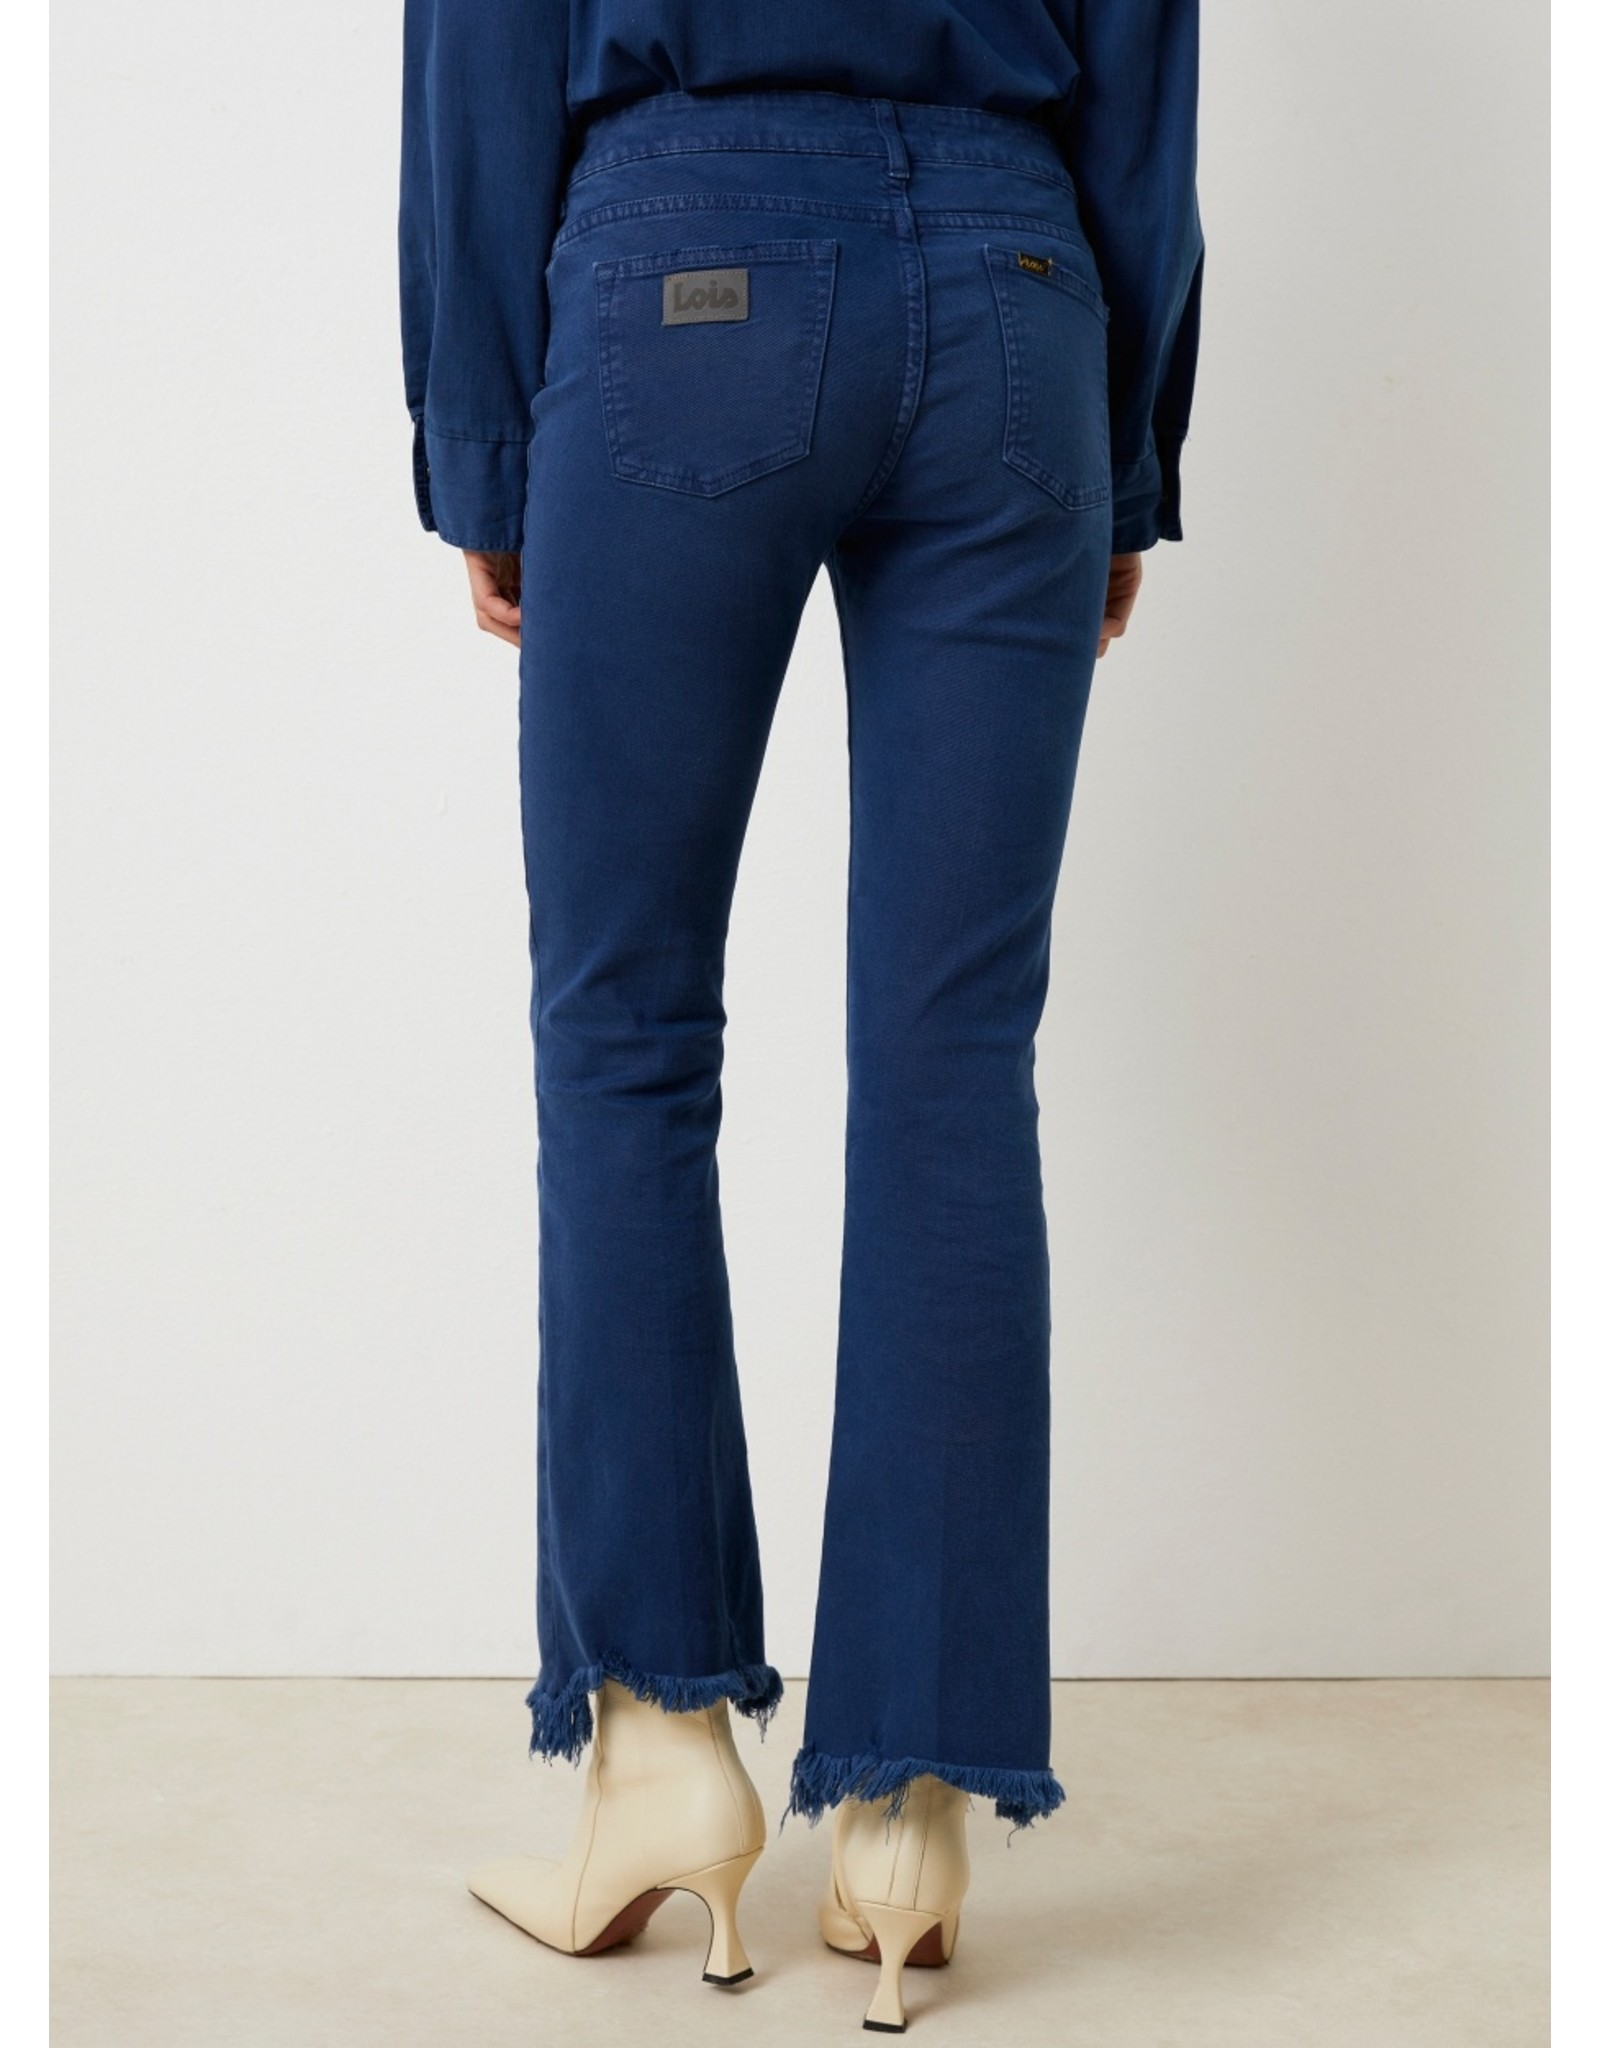 JEANS RAVAL FRAY BLUE